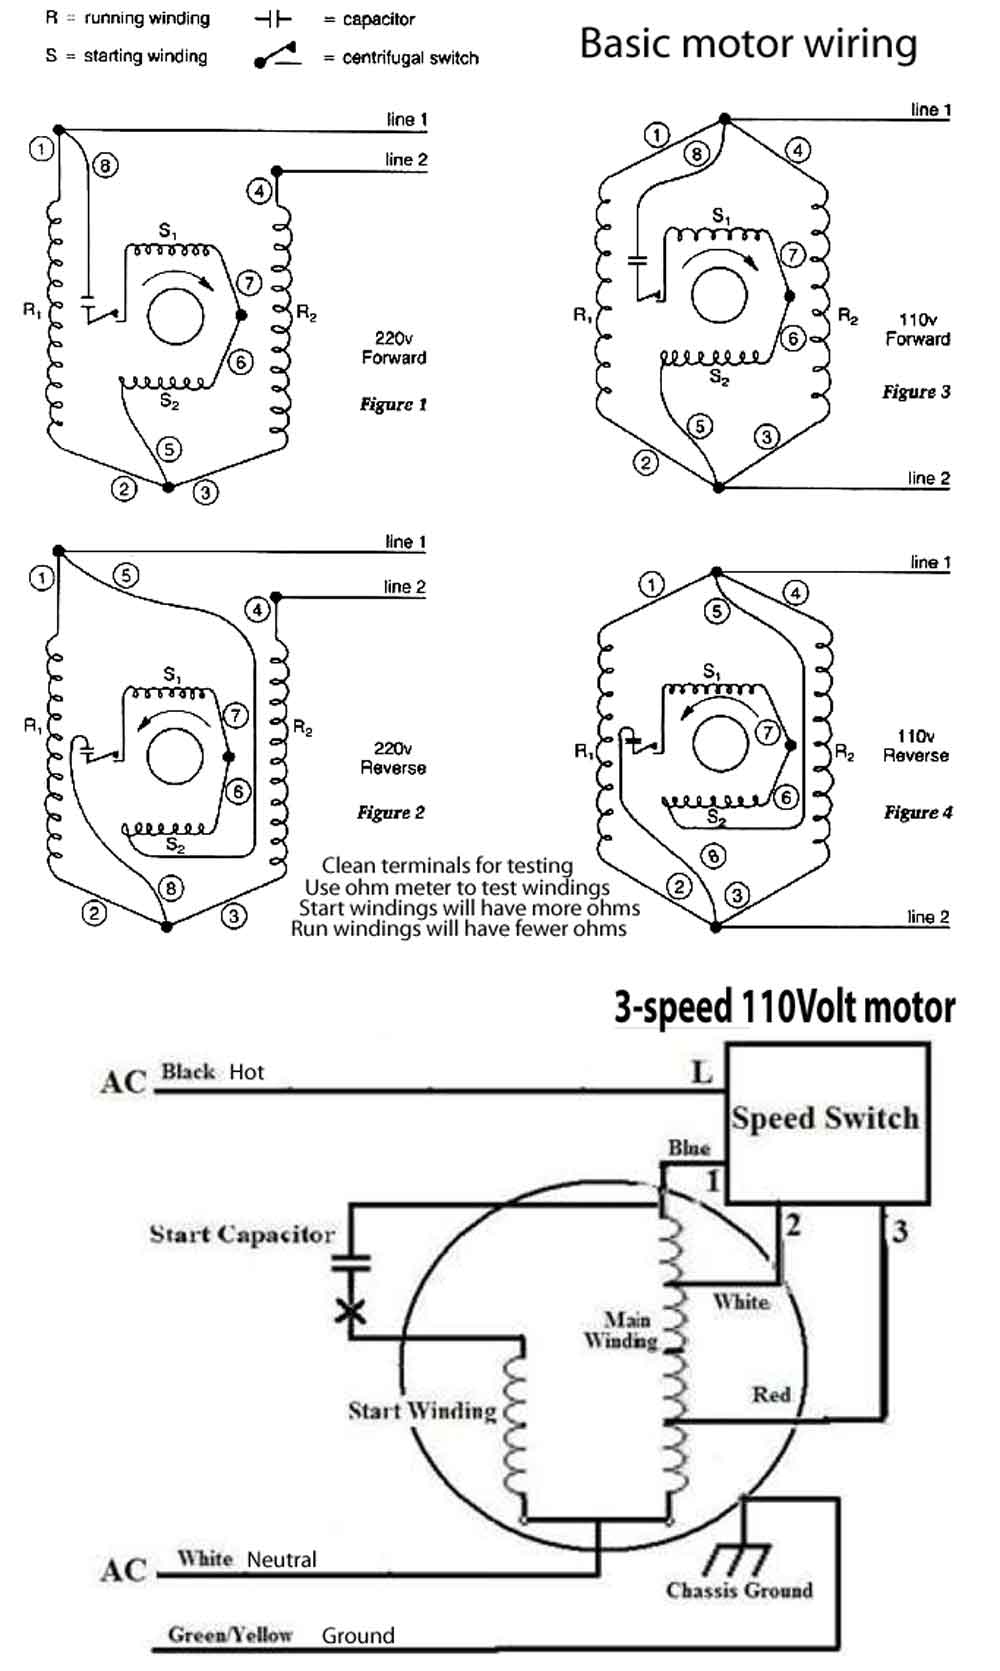 how to wire 3 speed fan switch motor wiring